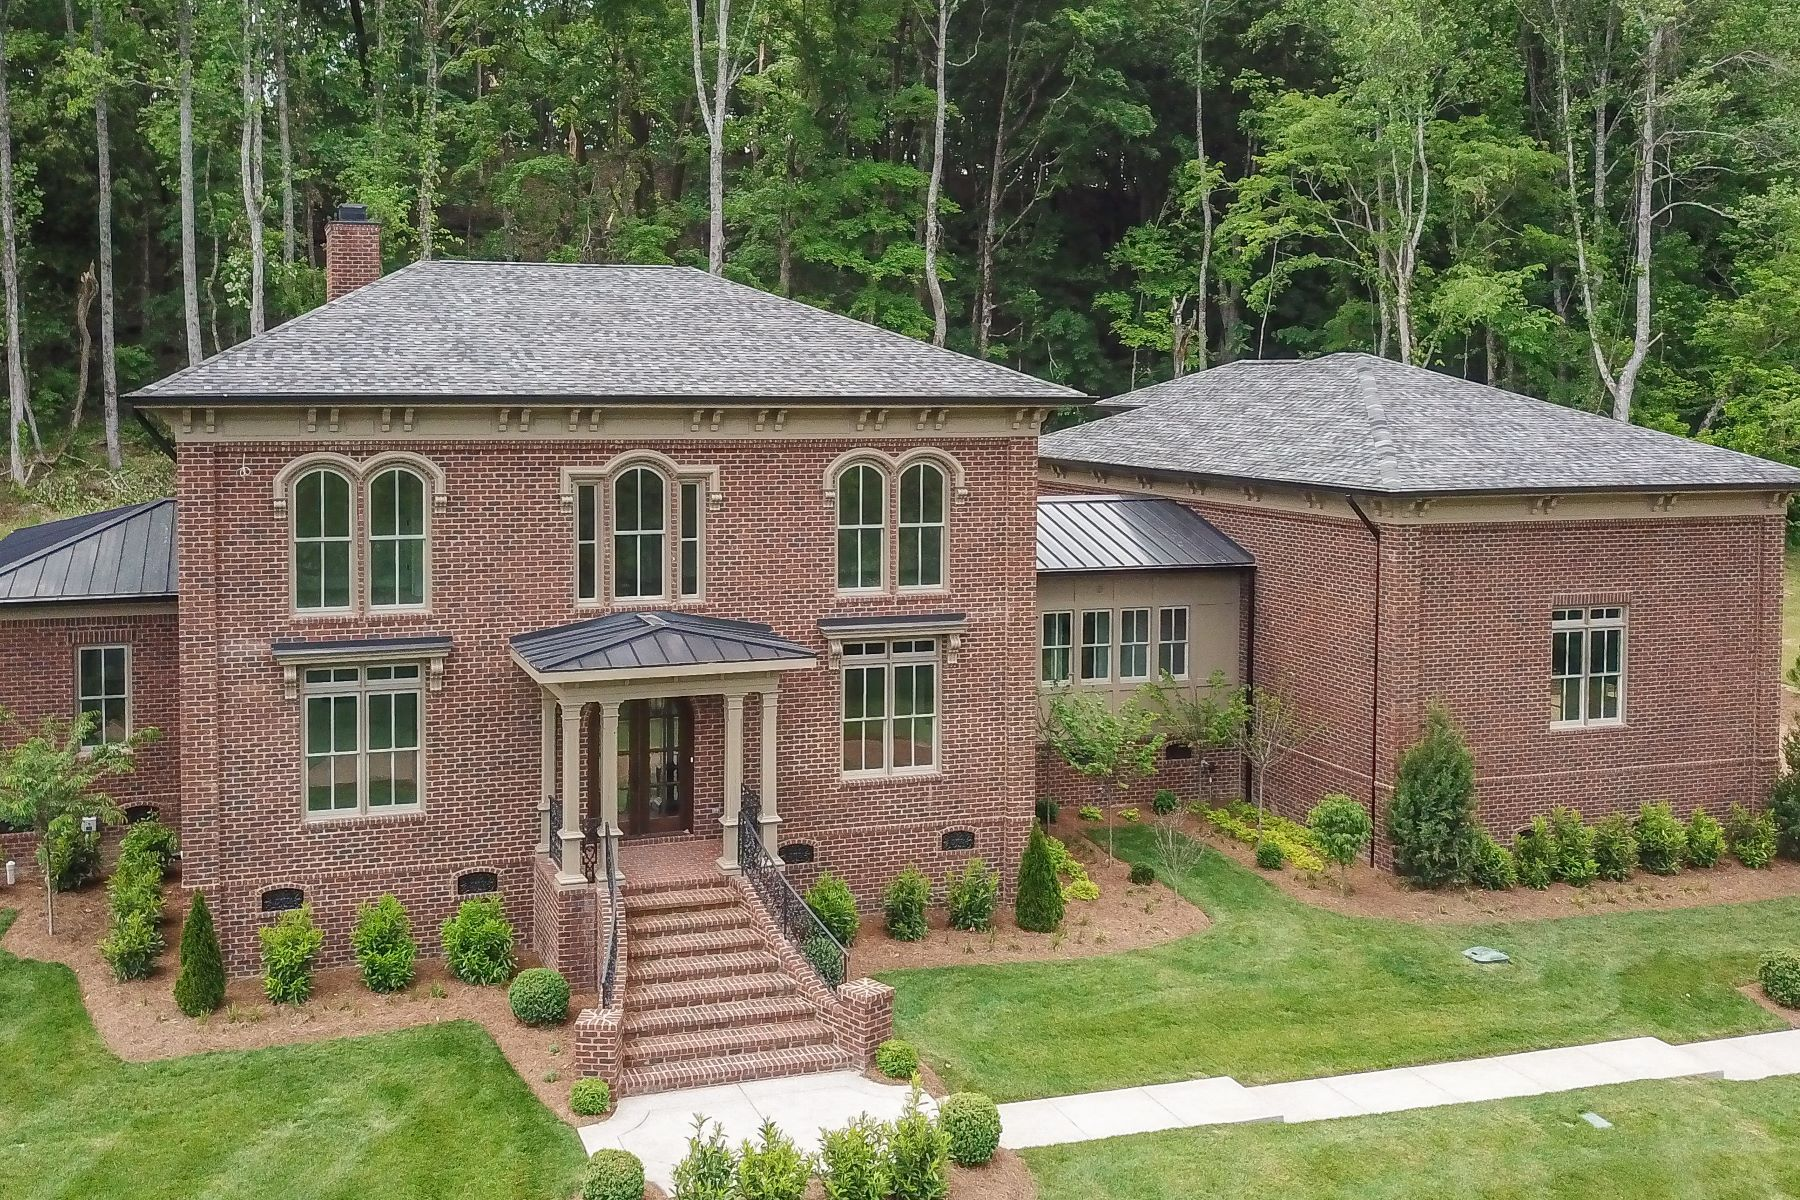 Single Family Homes por un Venta en One of a kind Italianate Home Built by Riverbirch Homes 4017 Grace Creek Valley Ln, Thompsons Station, Thompsons Station, Tennessee 37179 Estados Unidos